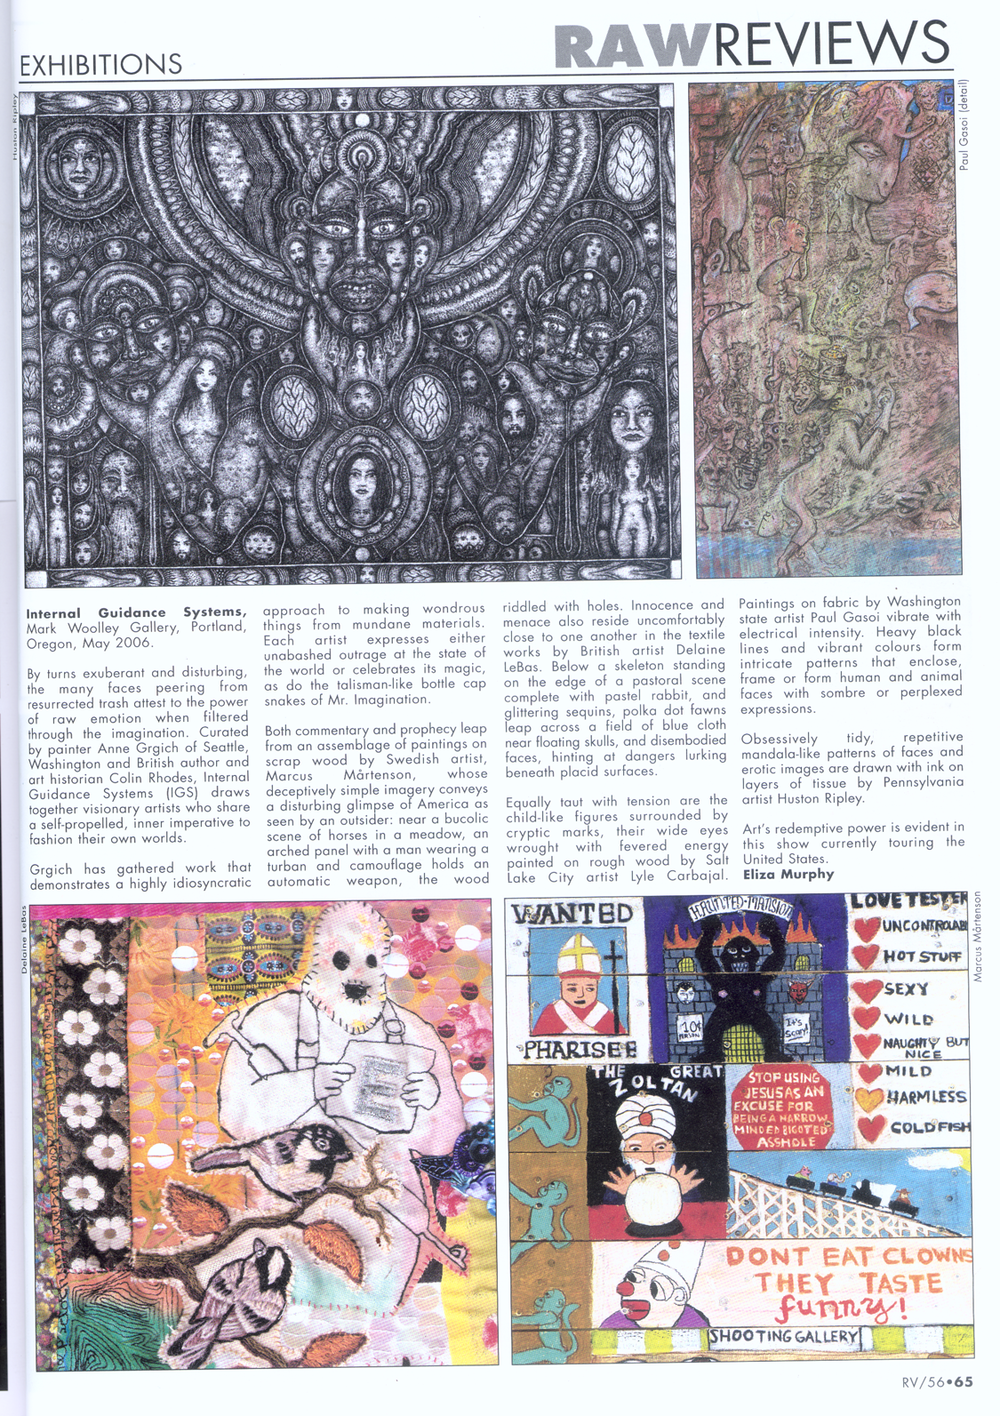 show-i-co-curated-with-colin-rhodes-raw-vision-magazine-review-issue-56-on-internal-guidance-systems-at-mark-woolley-gallery-in-portland-oregon-may-2006_402822421_o.png